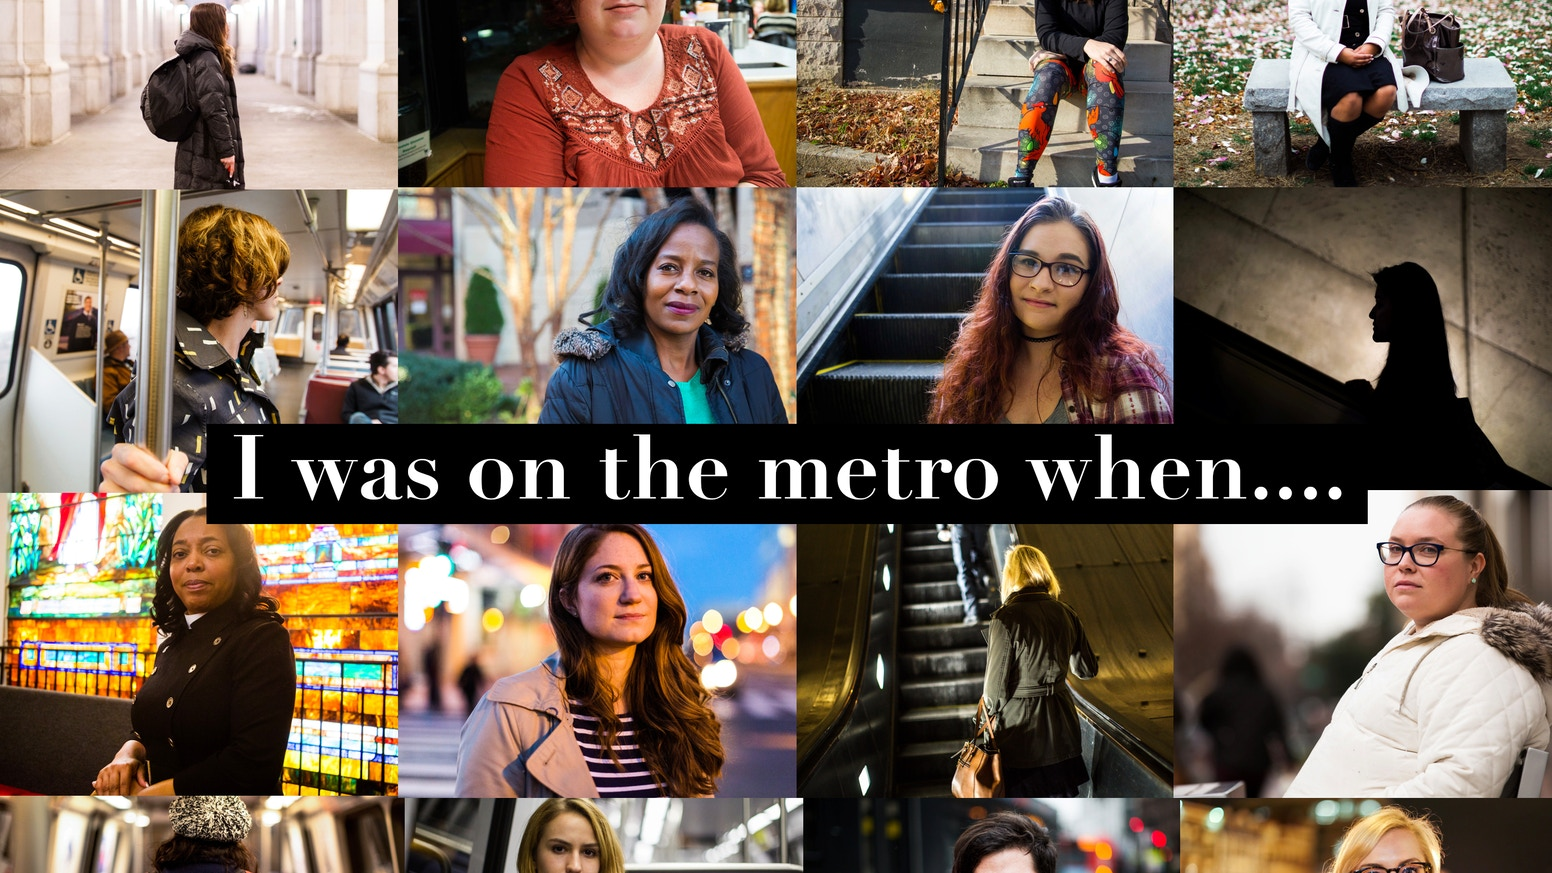 Documenting stories of sexual assault and harassment within public spaces from Washington, D.C. to Maine road trip.